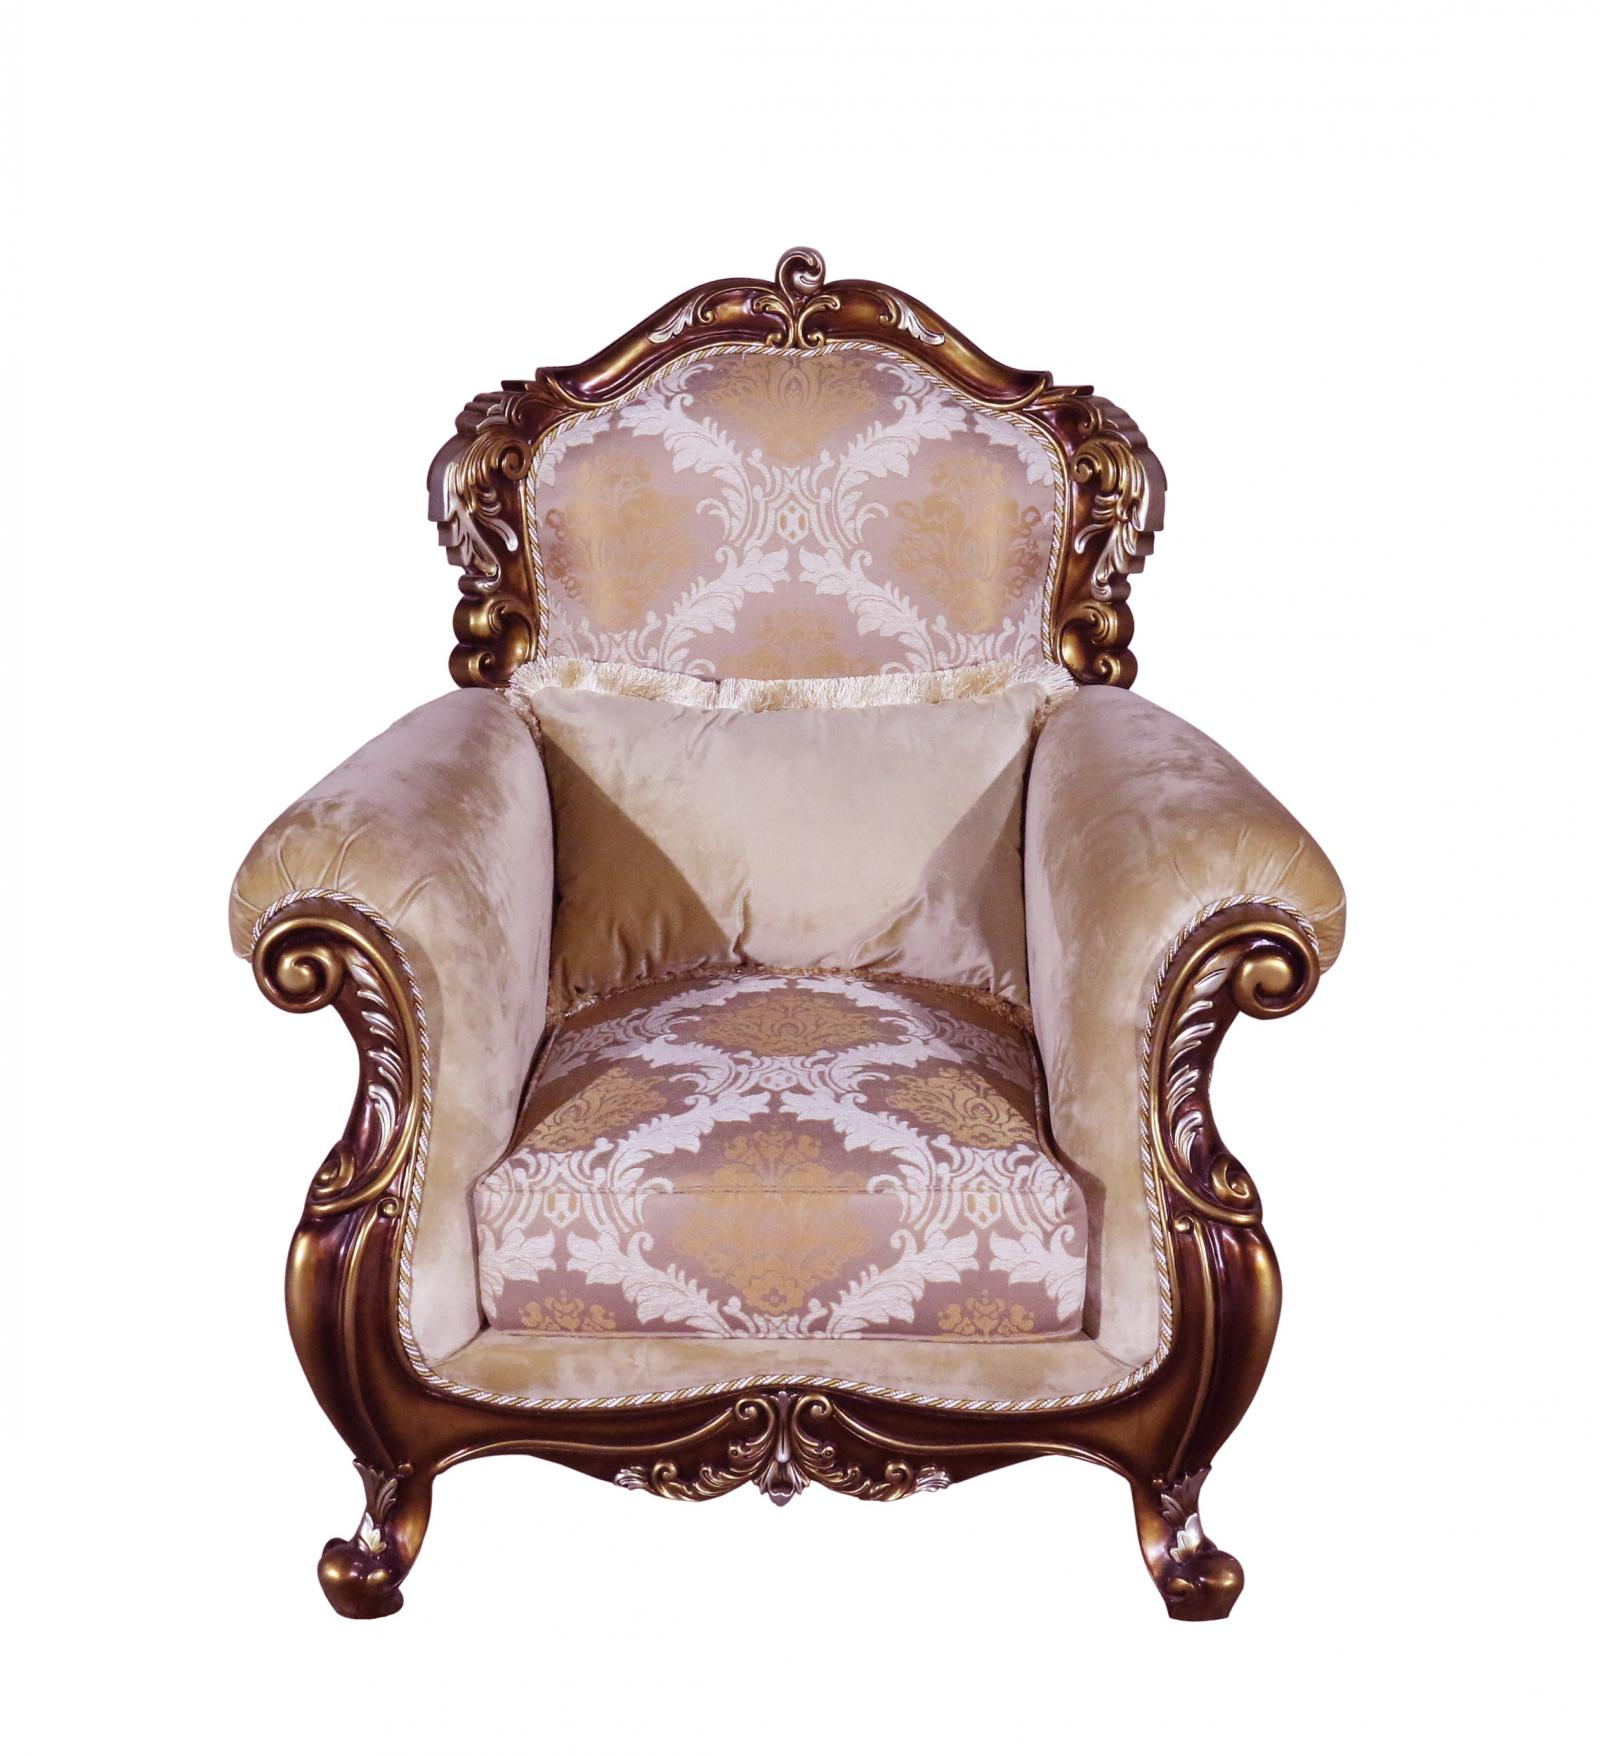 Classic  Traditional Brown  Gold  Silver  Antique Wood  Solid Hardwood and Fabric Arm Chair EUROPEAN FURNITURE 38994-C